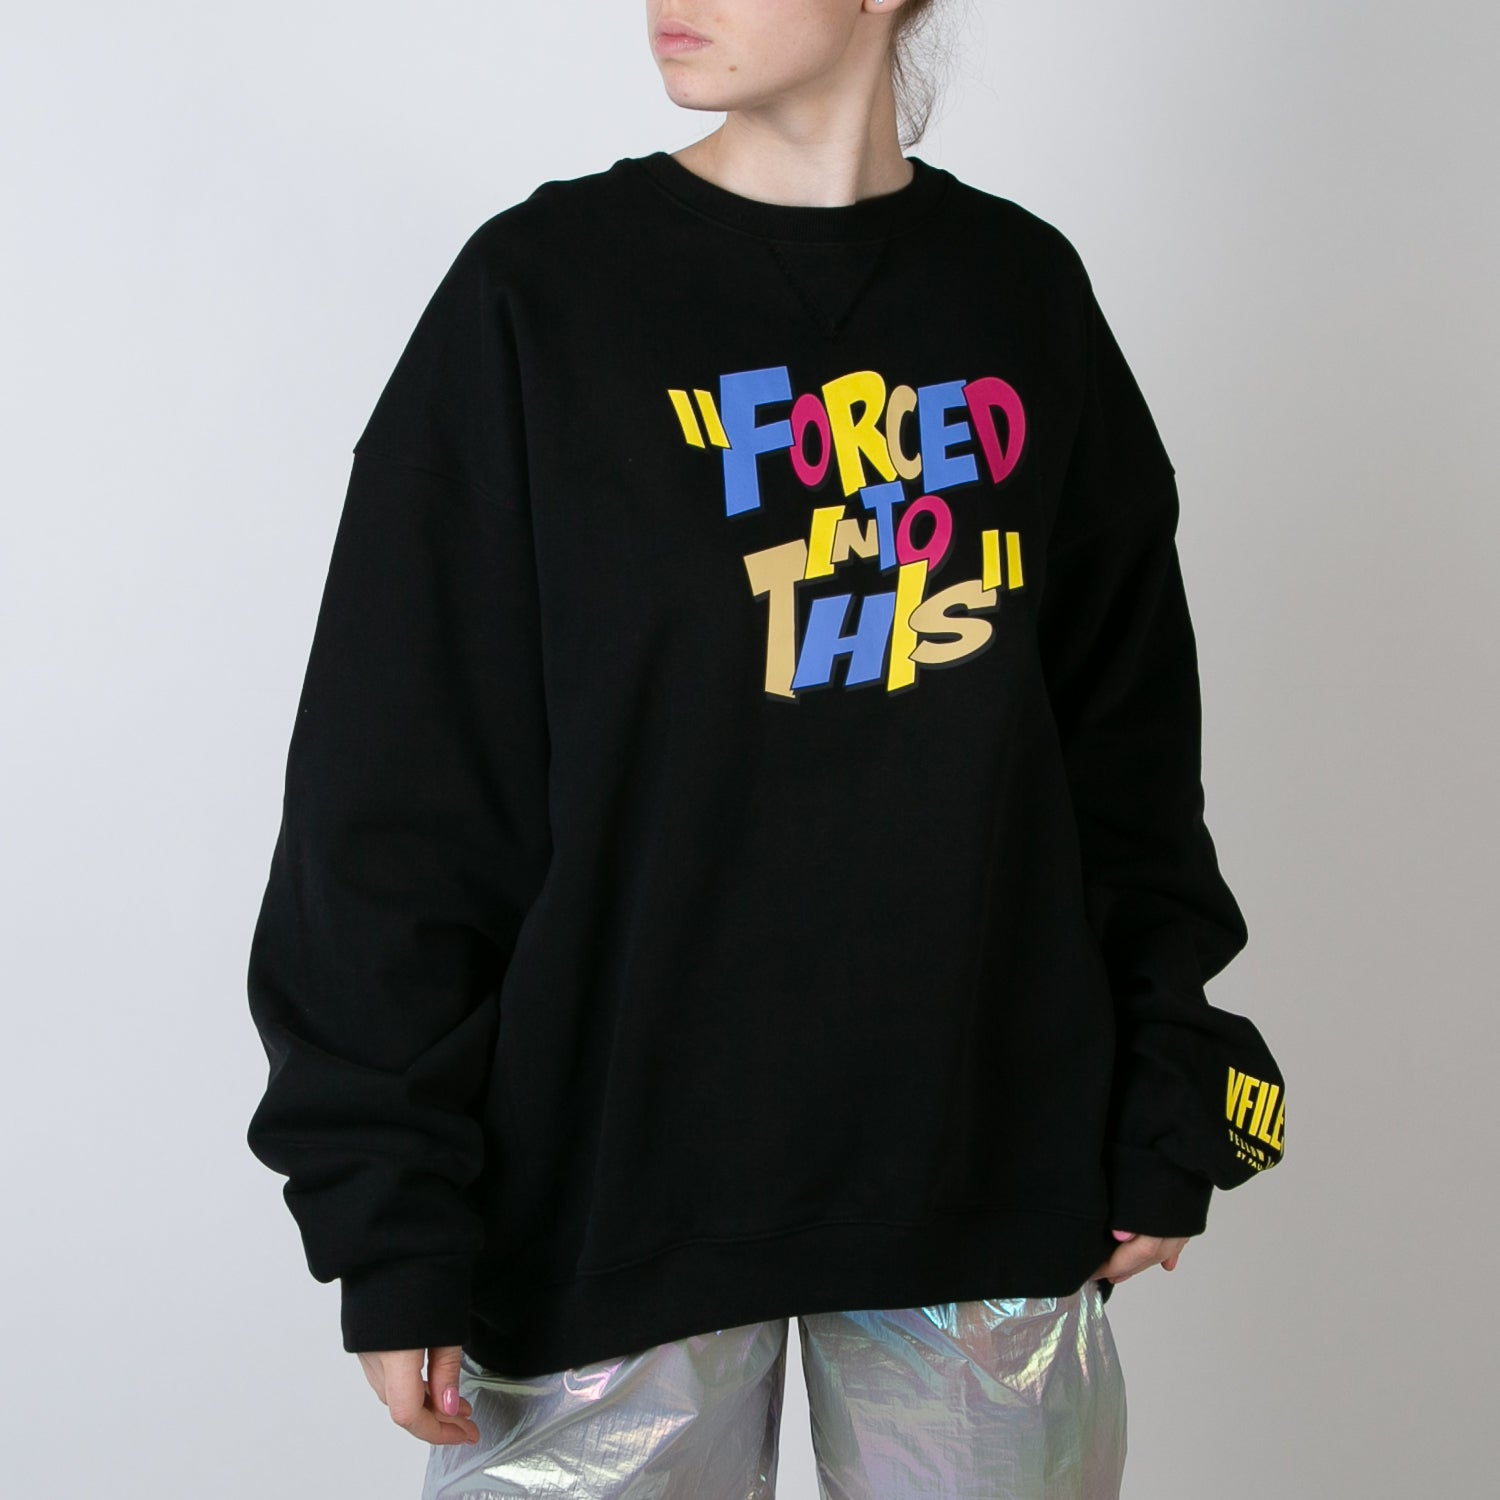 'Forced Into This' Crew Neck Sweater